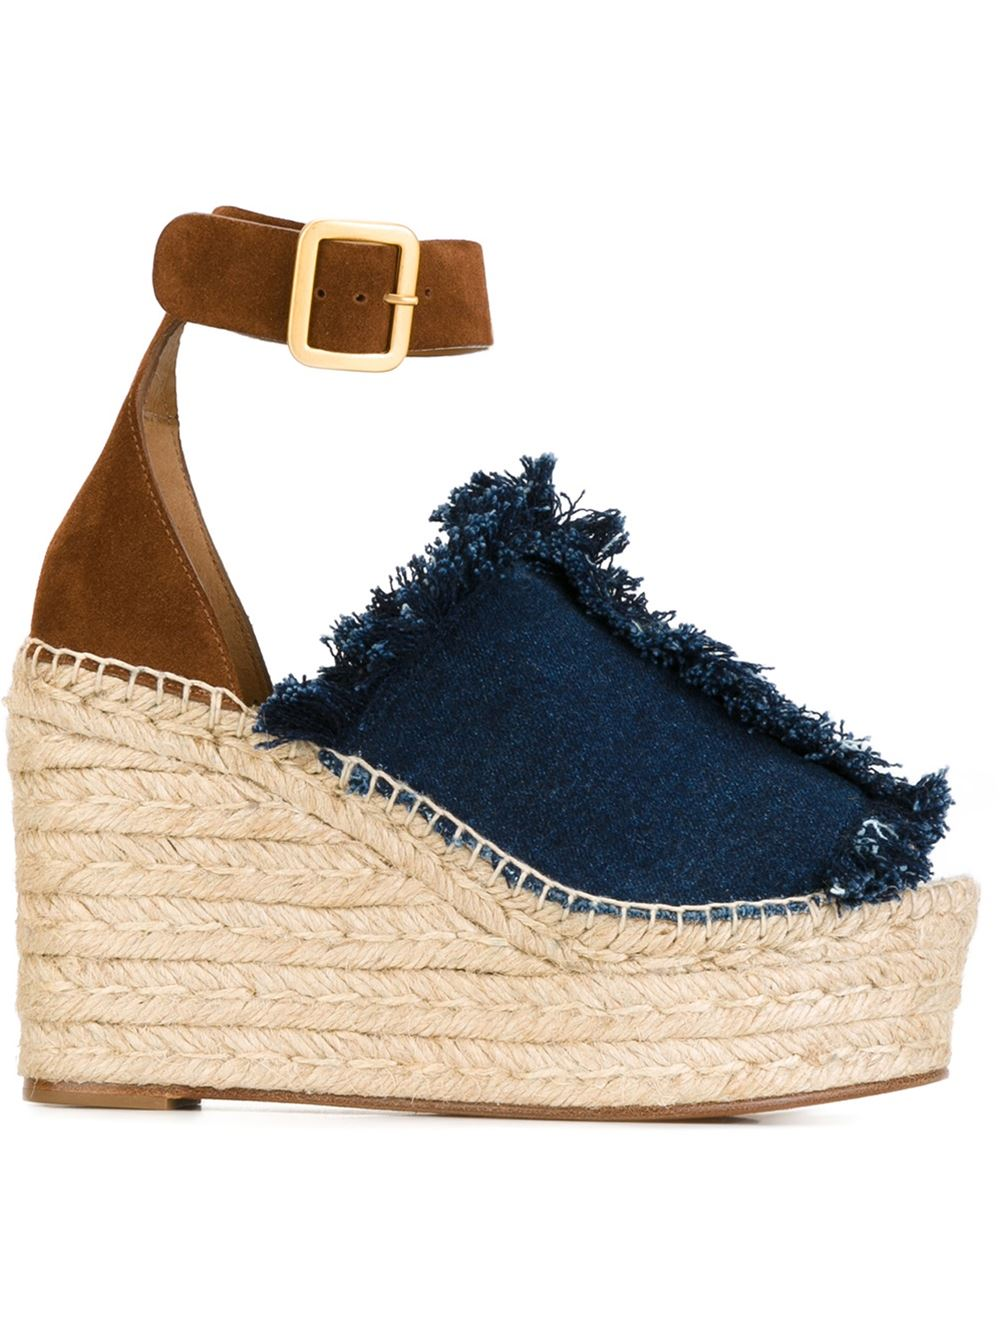 Chloe demin wedges, FarFetch.com